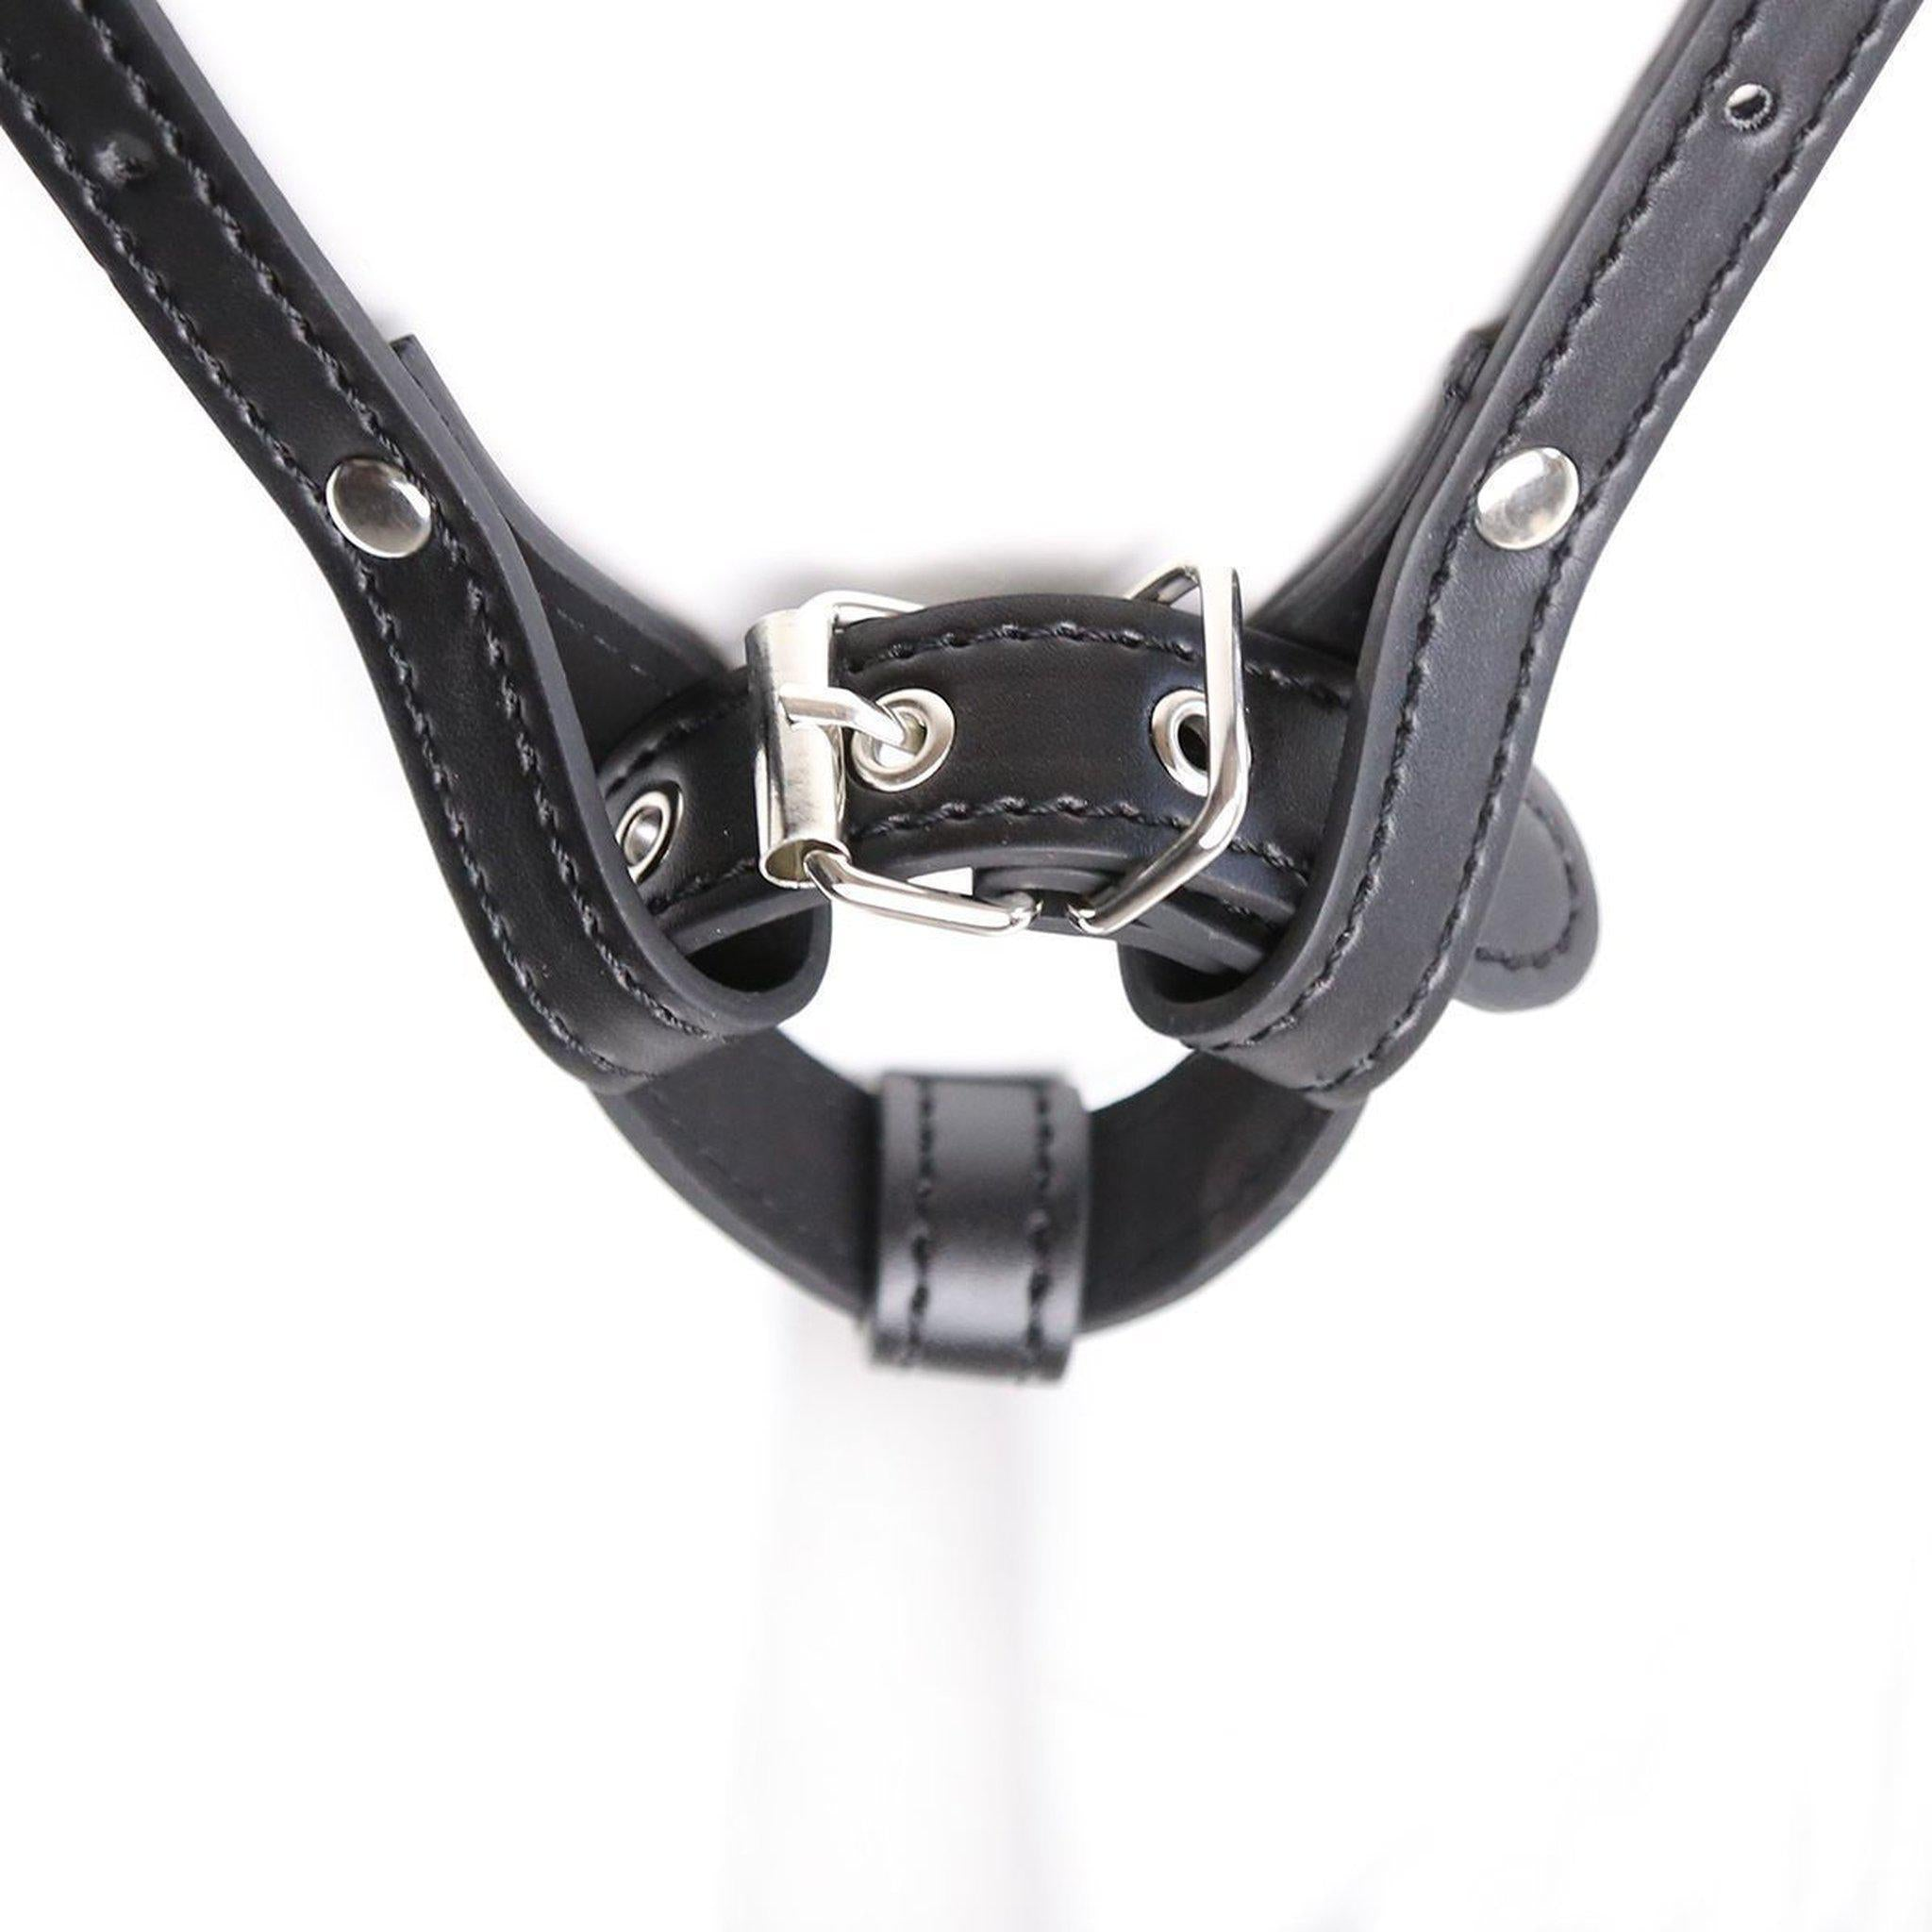 Forced Orgasm Chastity Belt-Good Girl xox-buy-bdsm-bondage-gear-tools-toys-online-good-girl-xox